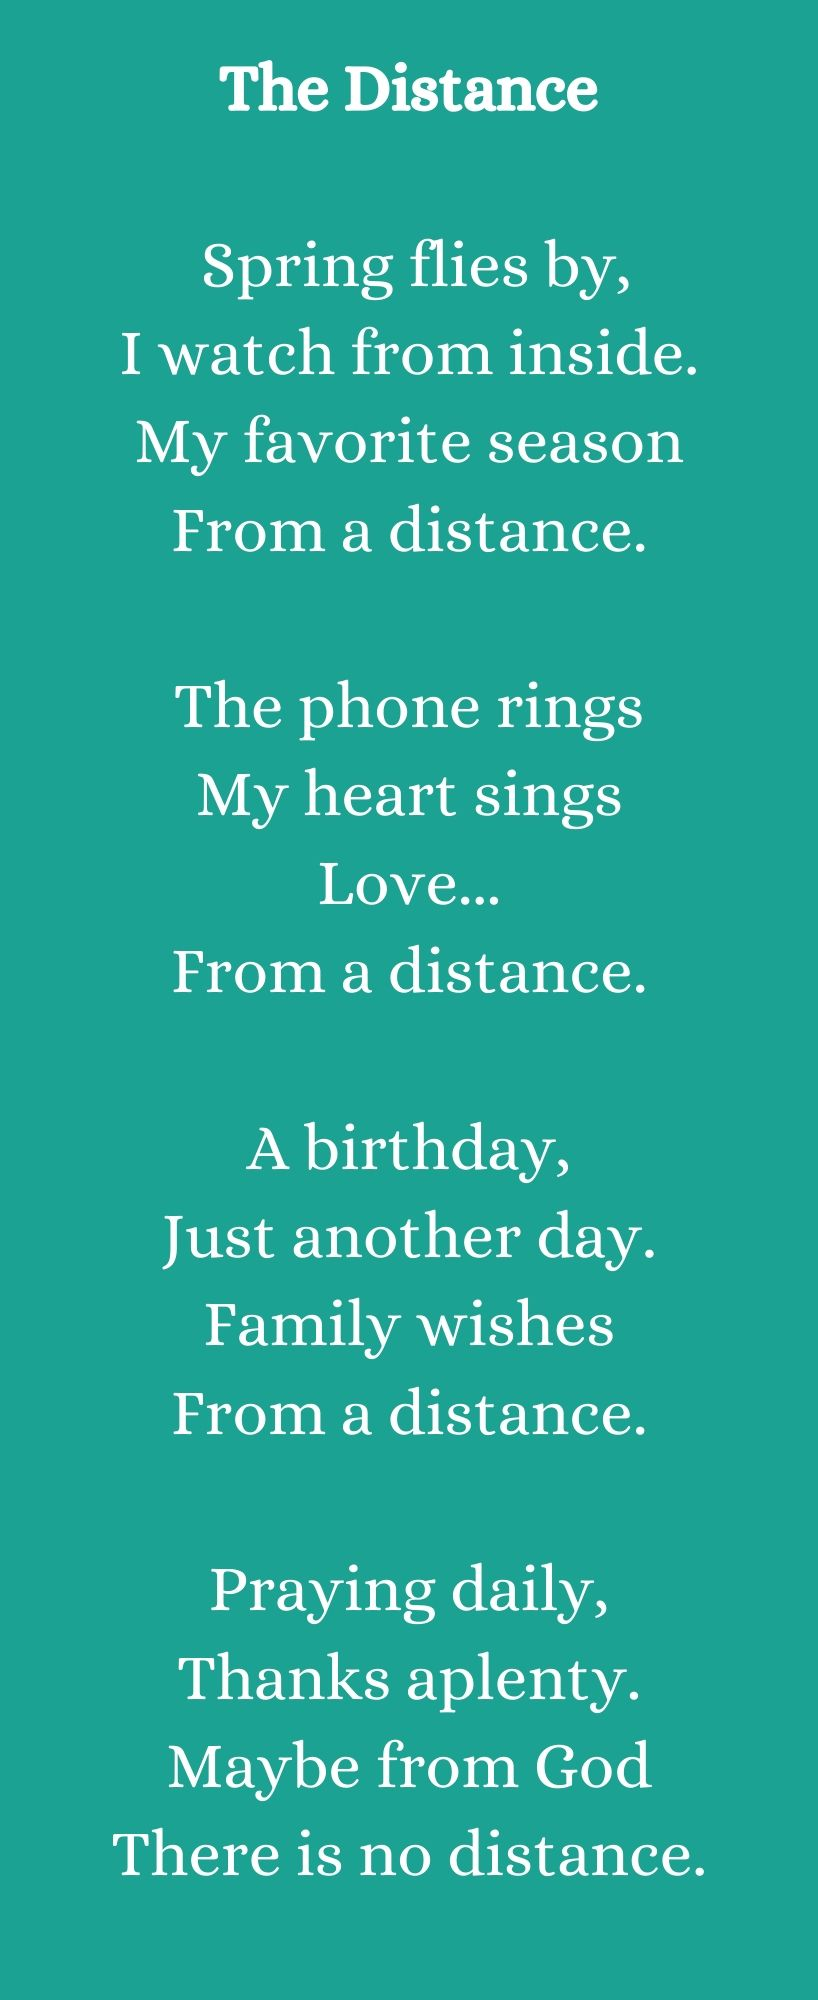 Poem title: The Distance. Poem: Spring flies by, I watch from inside. My favorite season From a distance. The phone rings My heart sings Love... From a distance. A birthday, Just another day. Family wishes From a distance. Praying daily, Thanks aplenty. Maybe from God There is no distance.